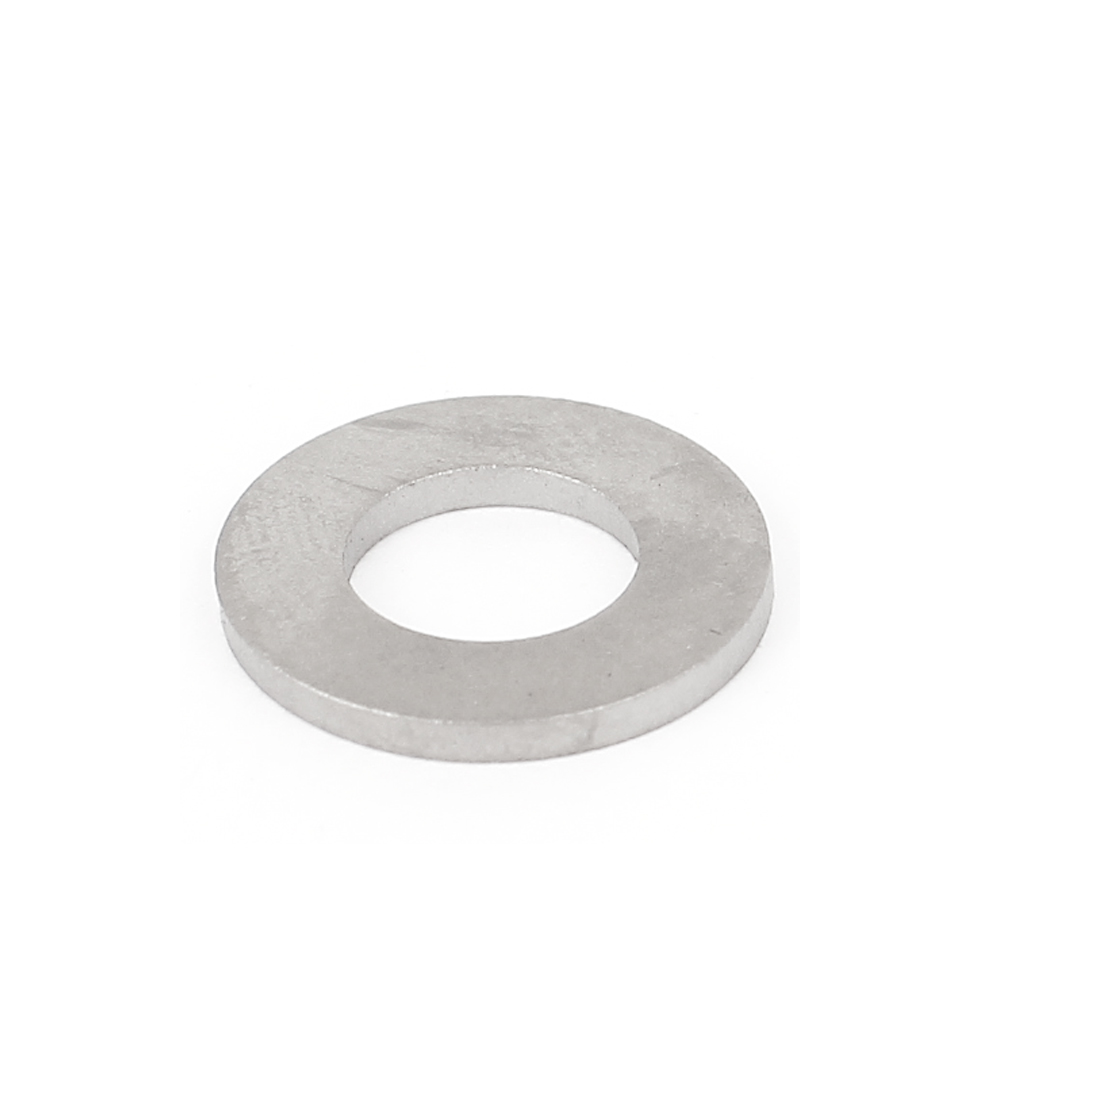 M8 Silver Tone Titanium Ti Flat Spacer Washer for Bicycle Cycling Motorcycle Car